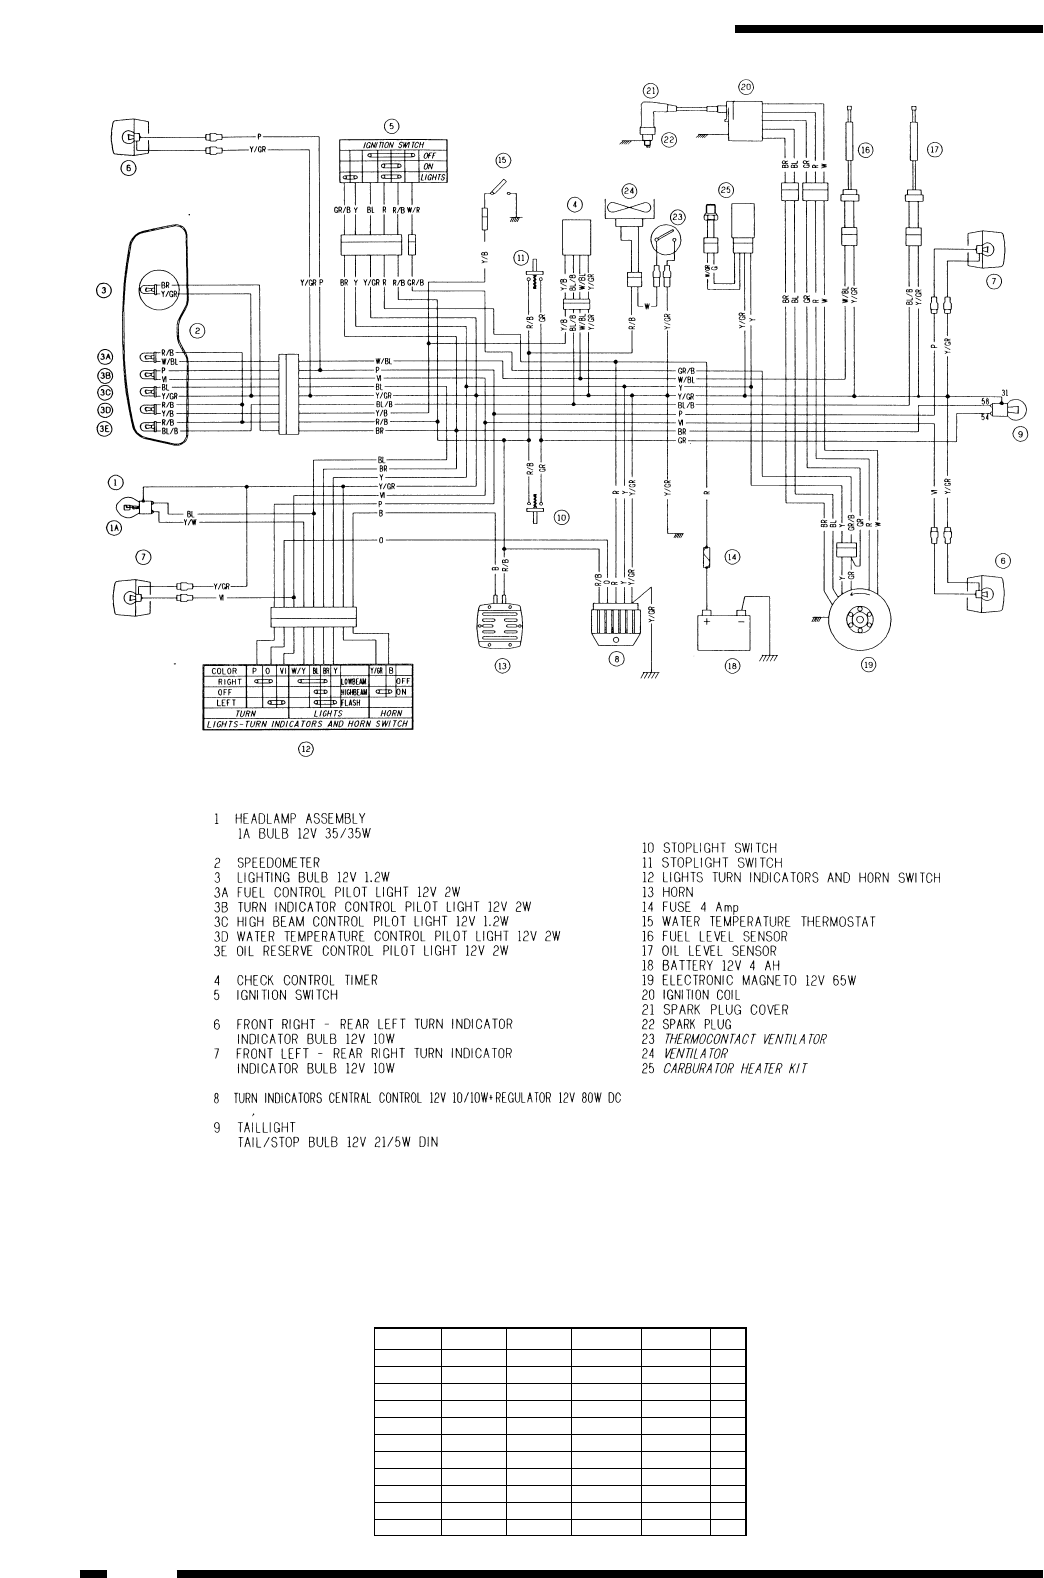 Derbi Senda Wiring Diagram Best And Letter 17 2 Electrical Handleiding Gpr 50cc 6 Sd Pagina 66 Van 71 English